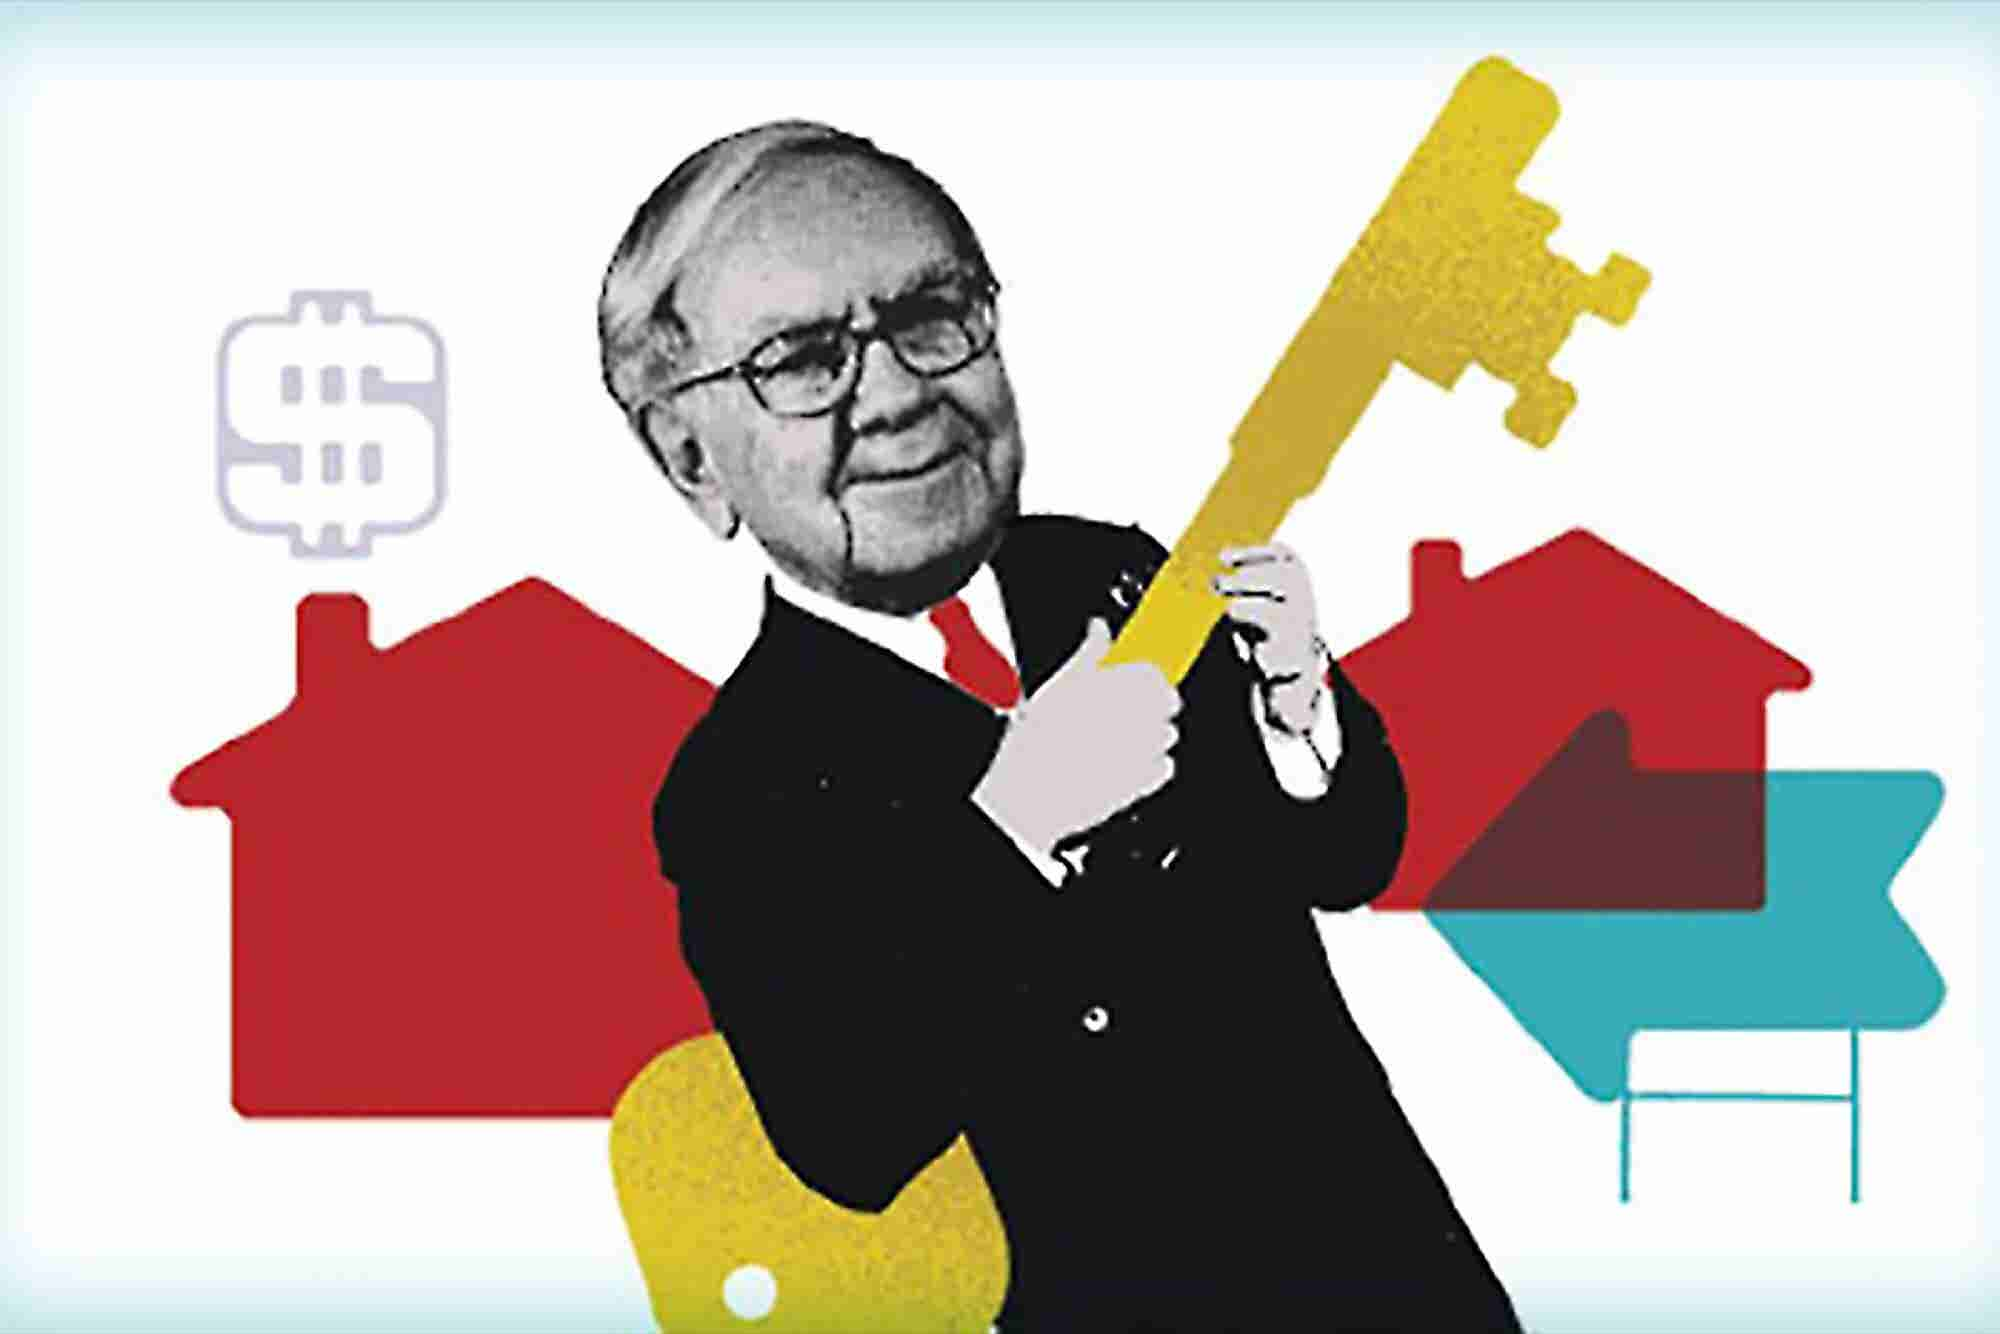 Meet the Real Estate Franchise Backed by Warren Buffett